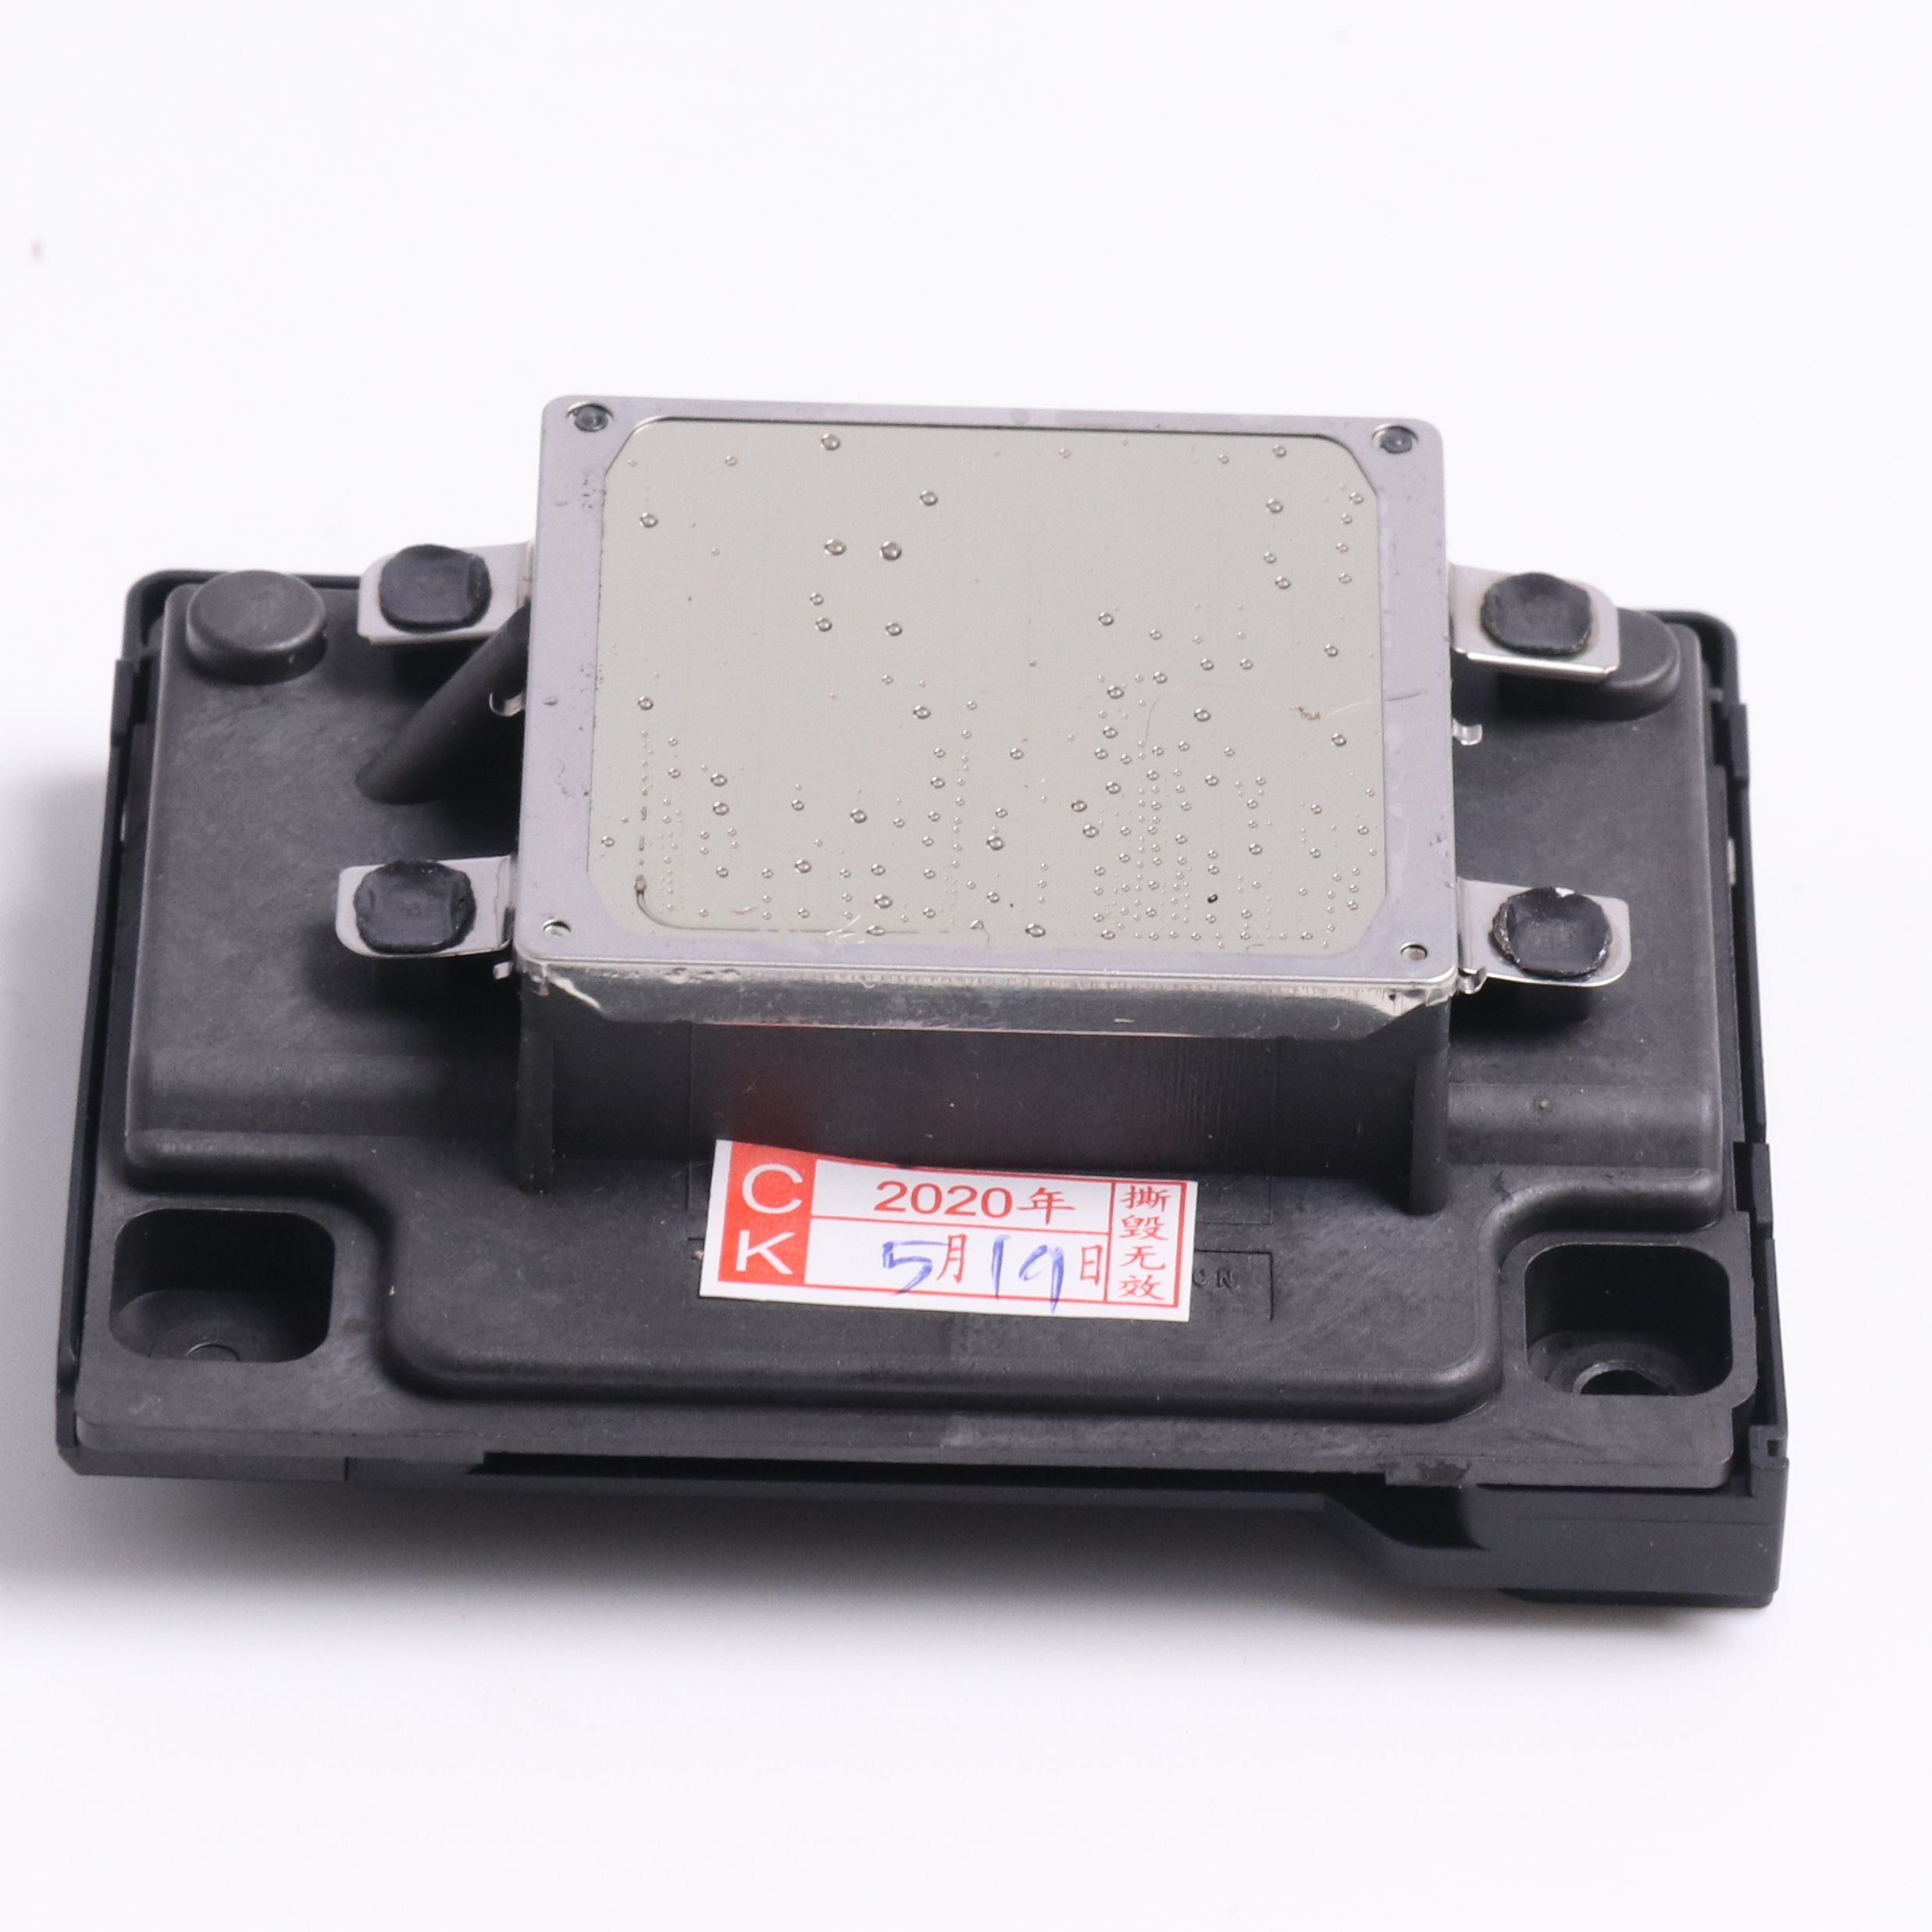 Printer head for epson L301 L353 L455 L358 L351 L551 L355 L550 l1800 stylus pro 4880 for epson print head